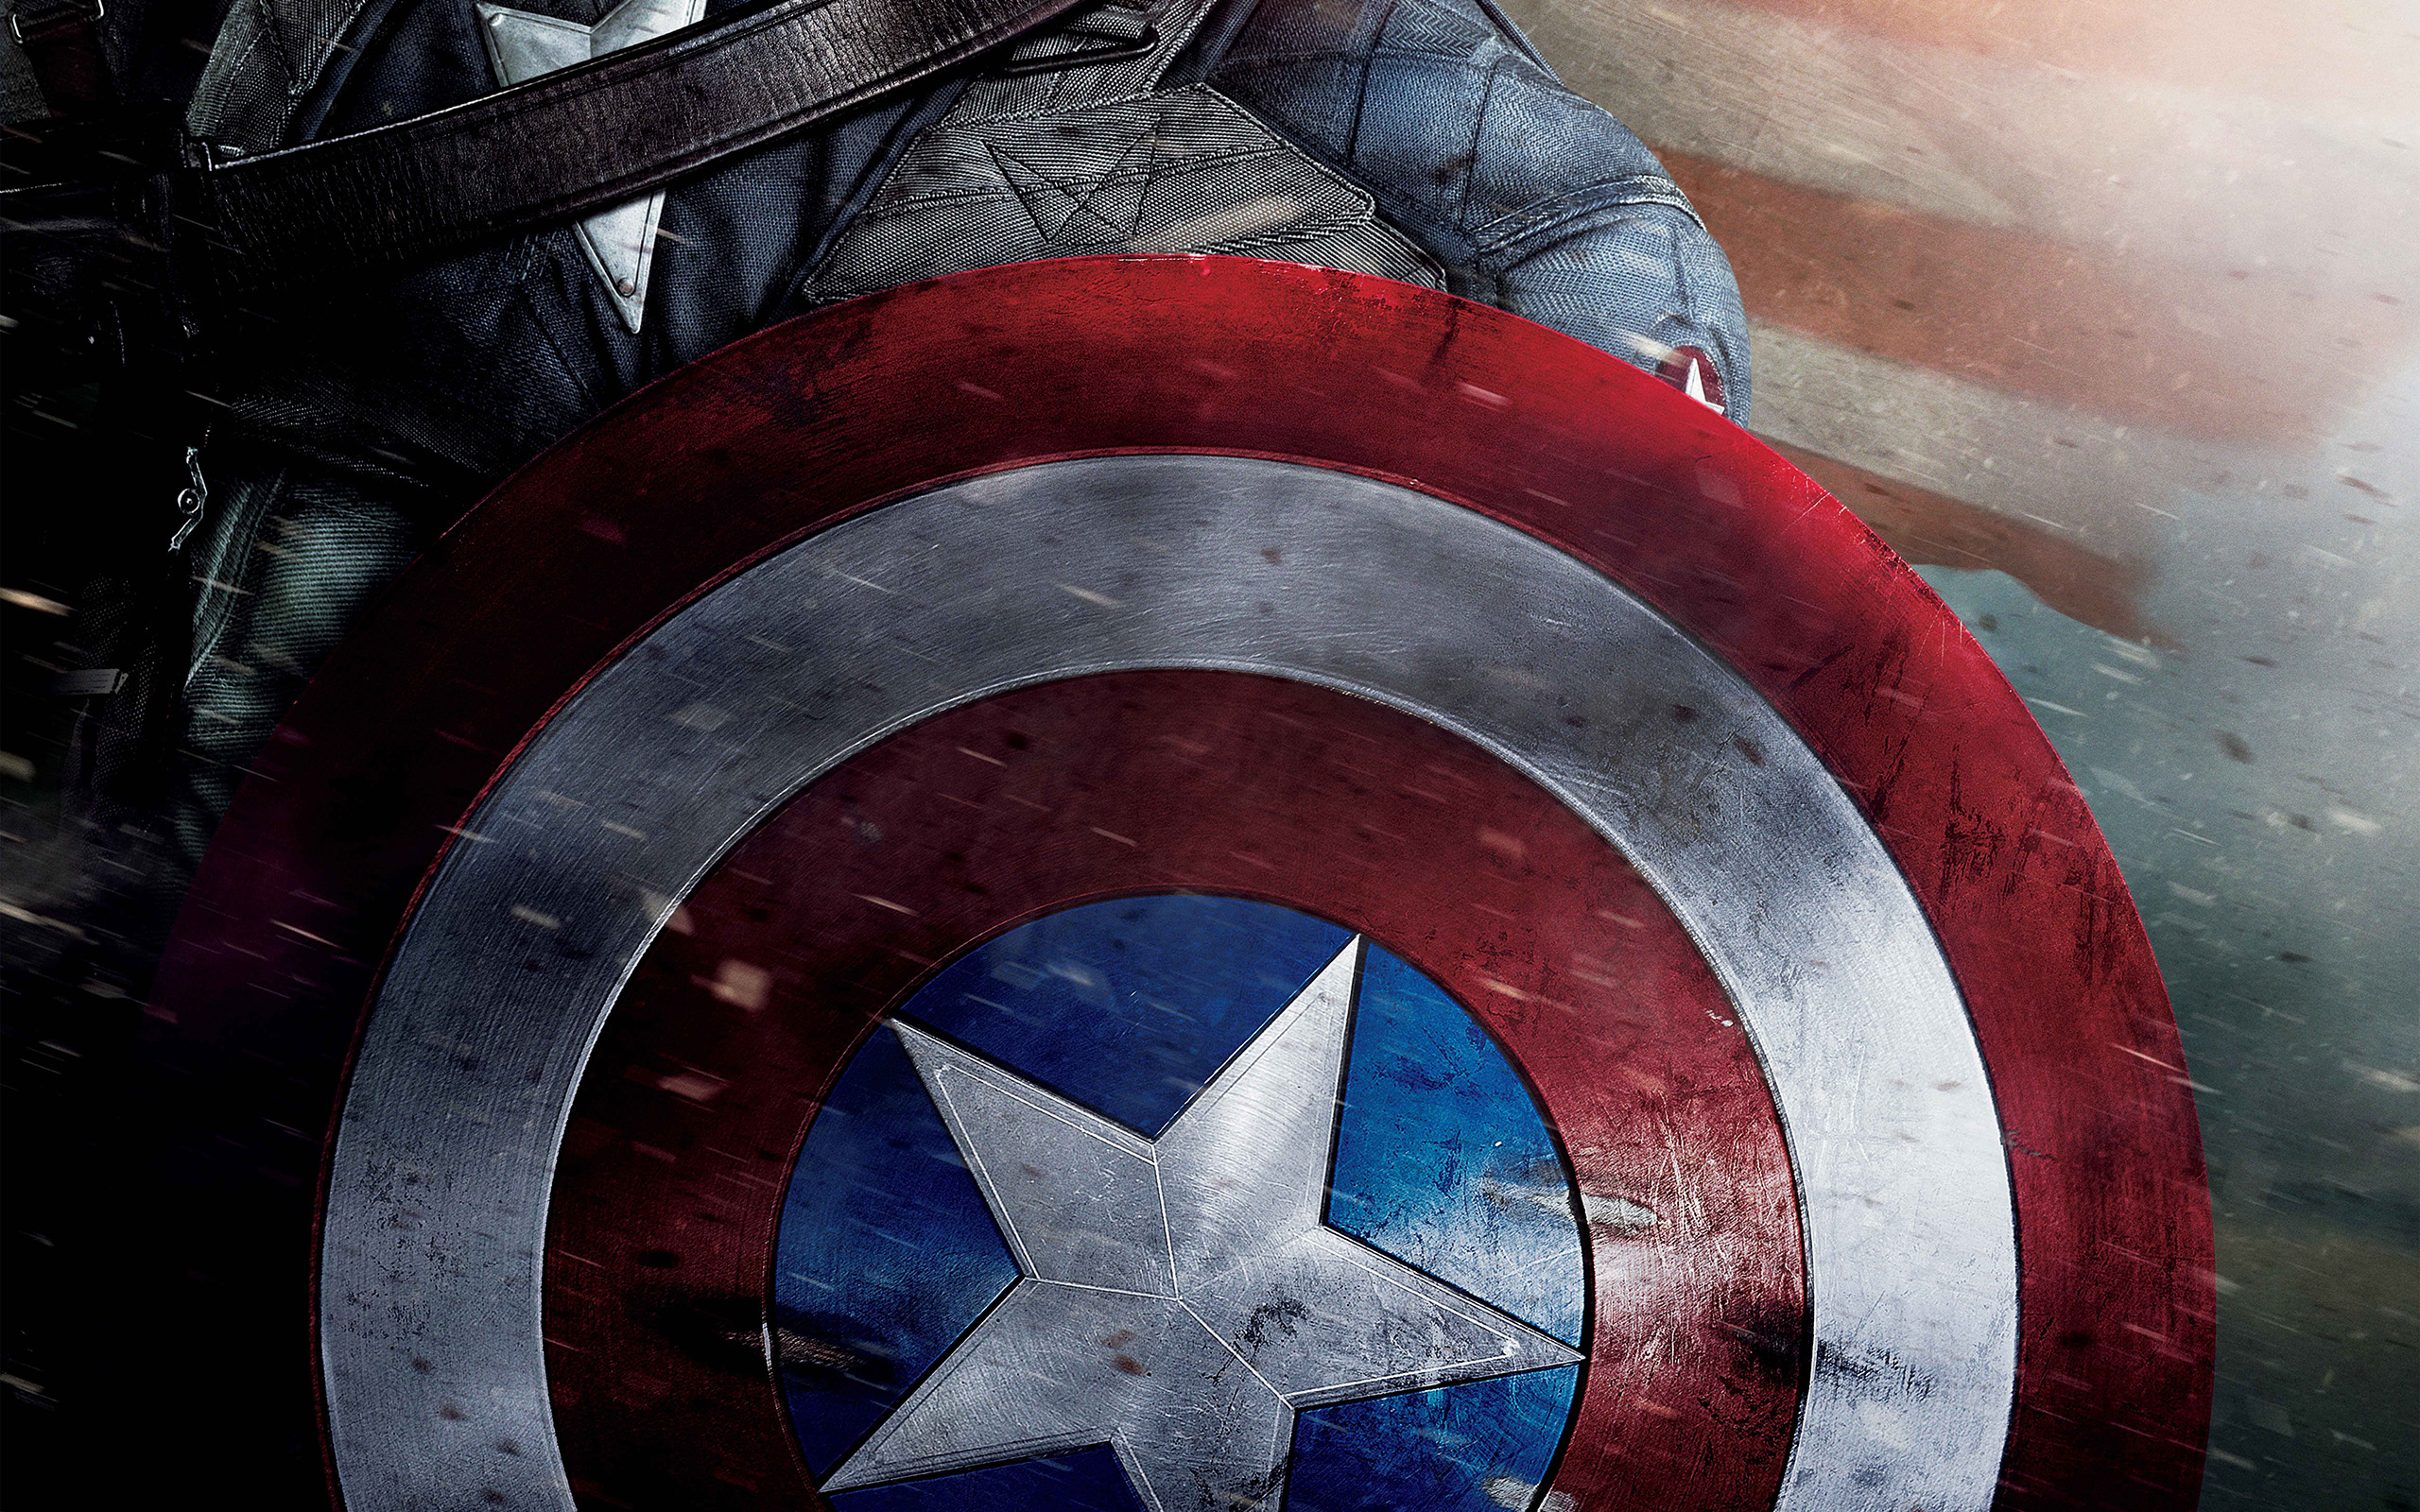 Car Logo Wallpaper Iphone 5 Ap29 Captain America Poster Film Hero Art Wallpaper